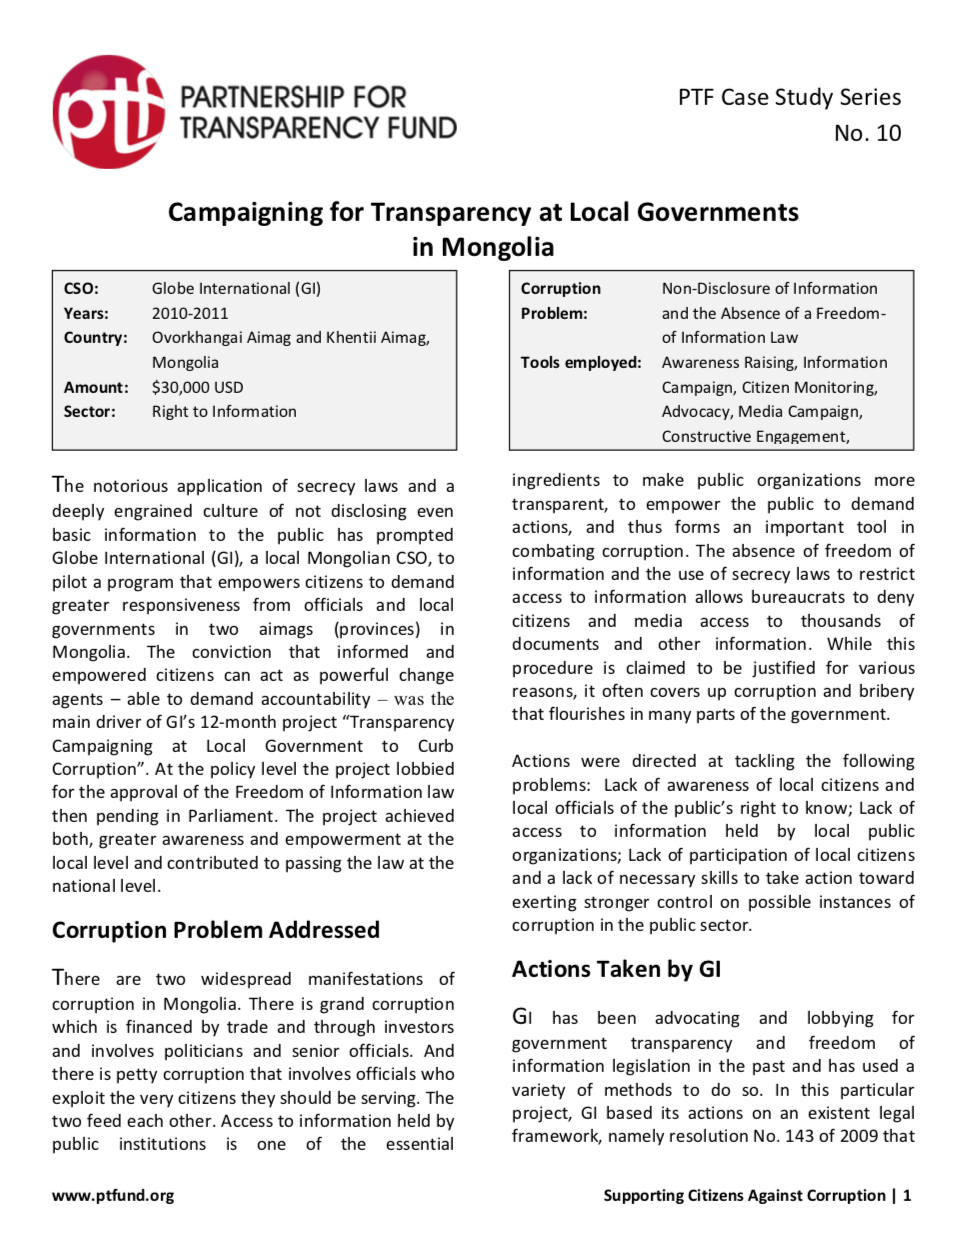 Campaigning for Transparency at Local Governments in